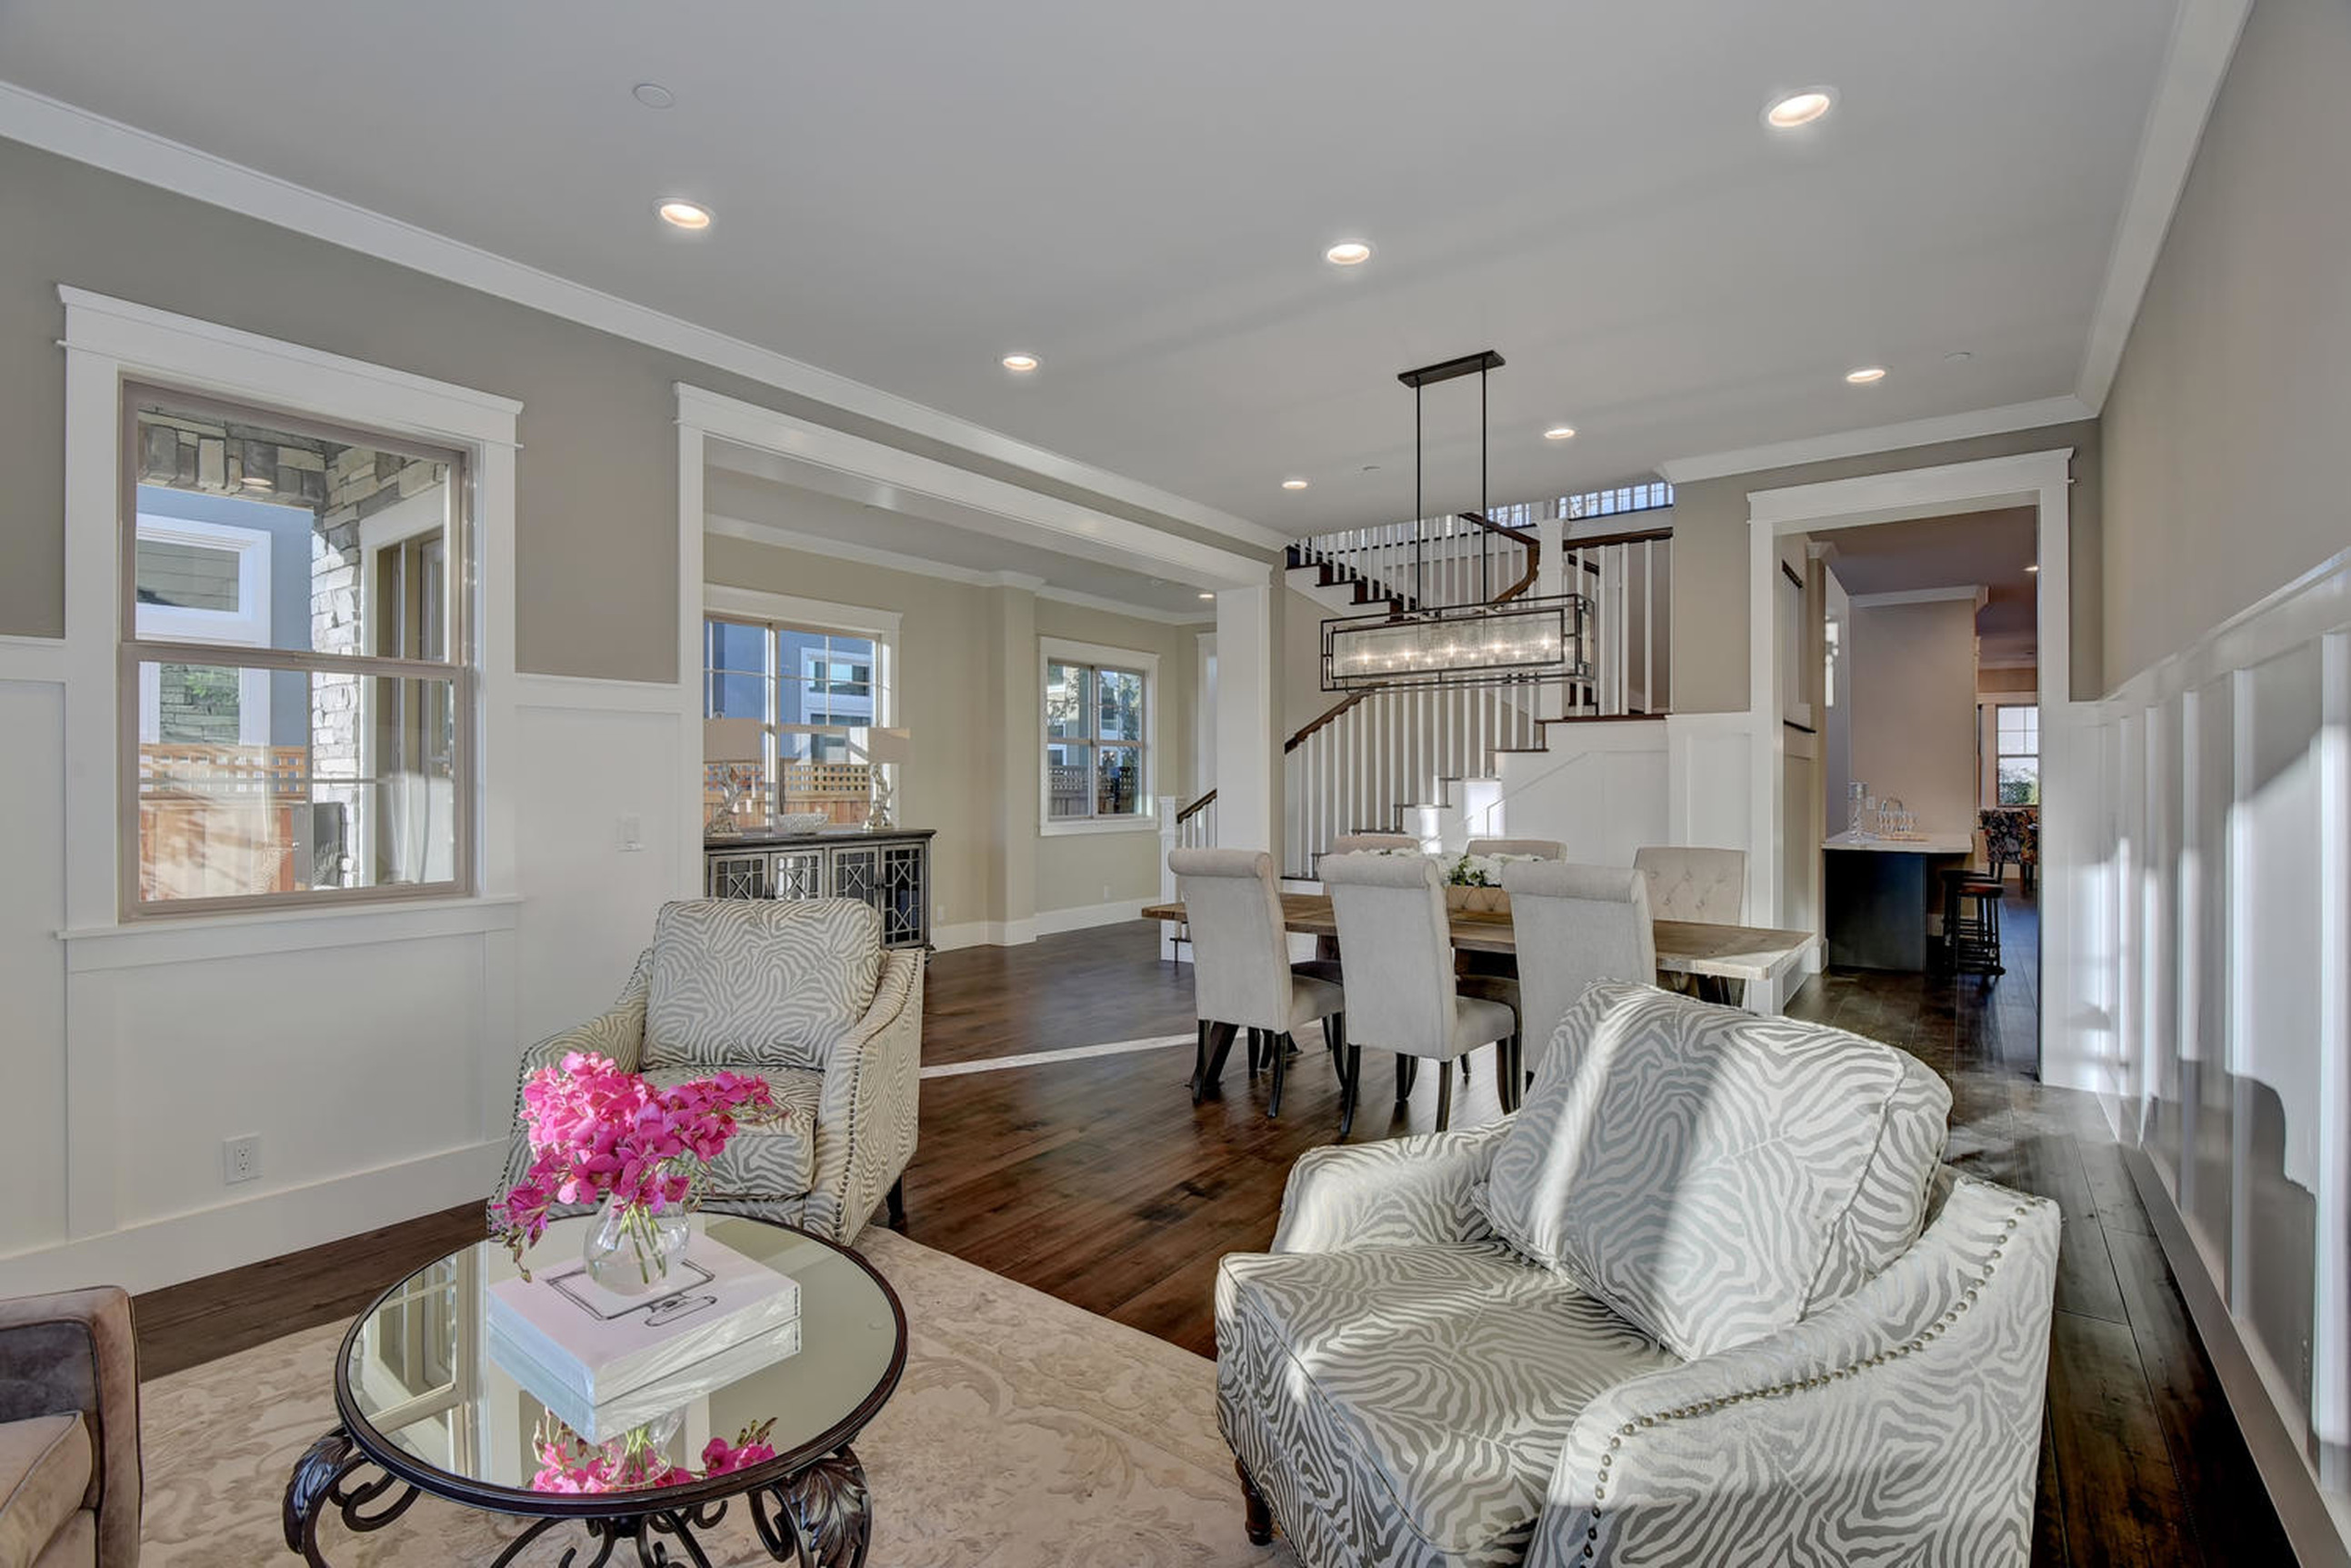 Aspen Luxury Interiors image 4